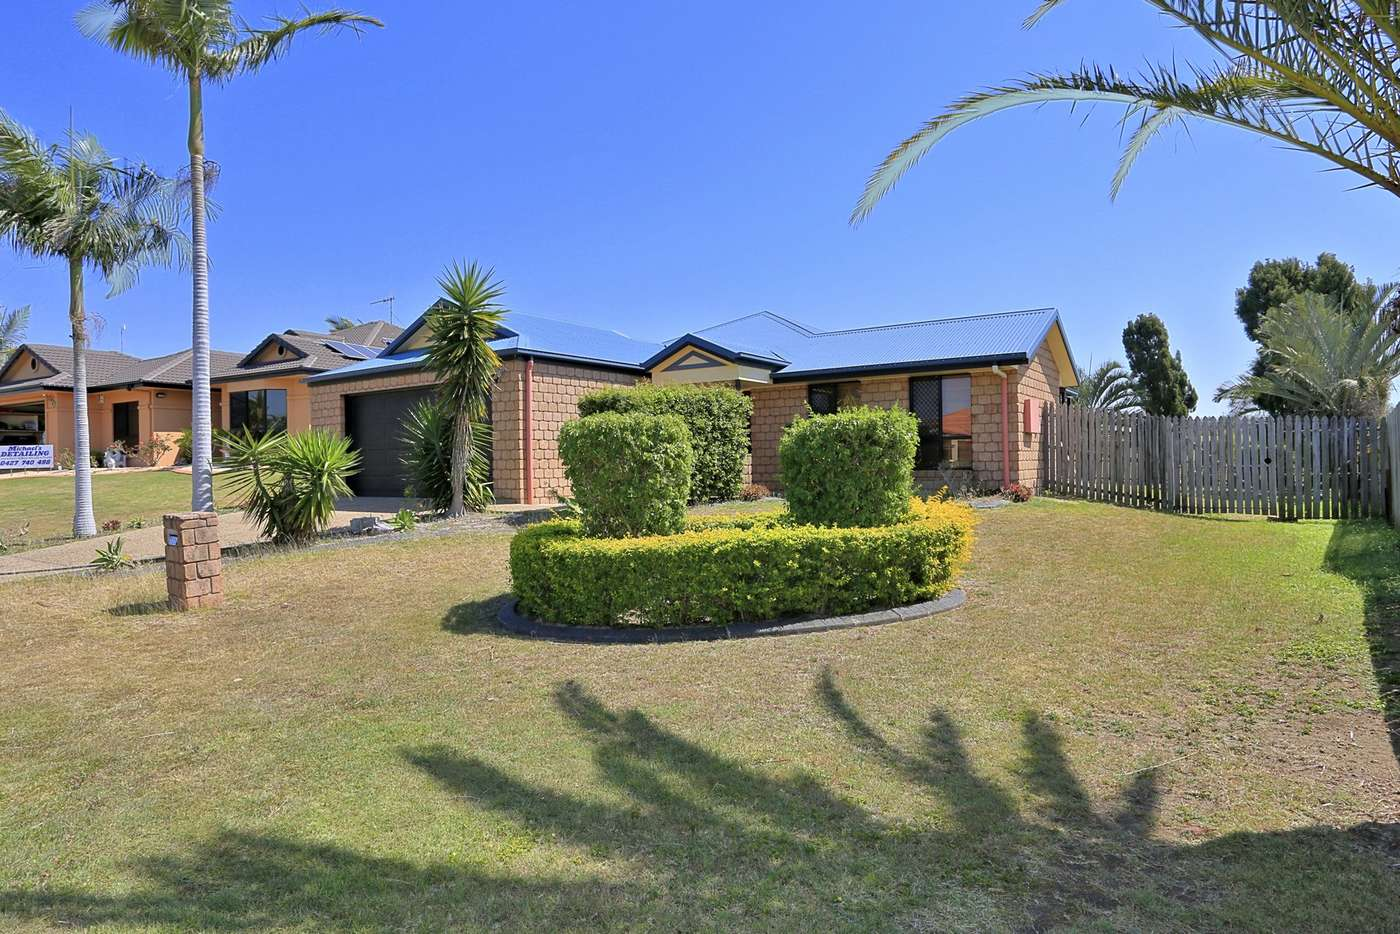 Main view of Homely house listing, 225 Barolin Esplanade, Coral Cove QLD 4670